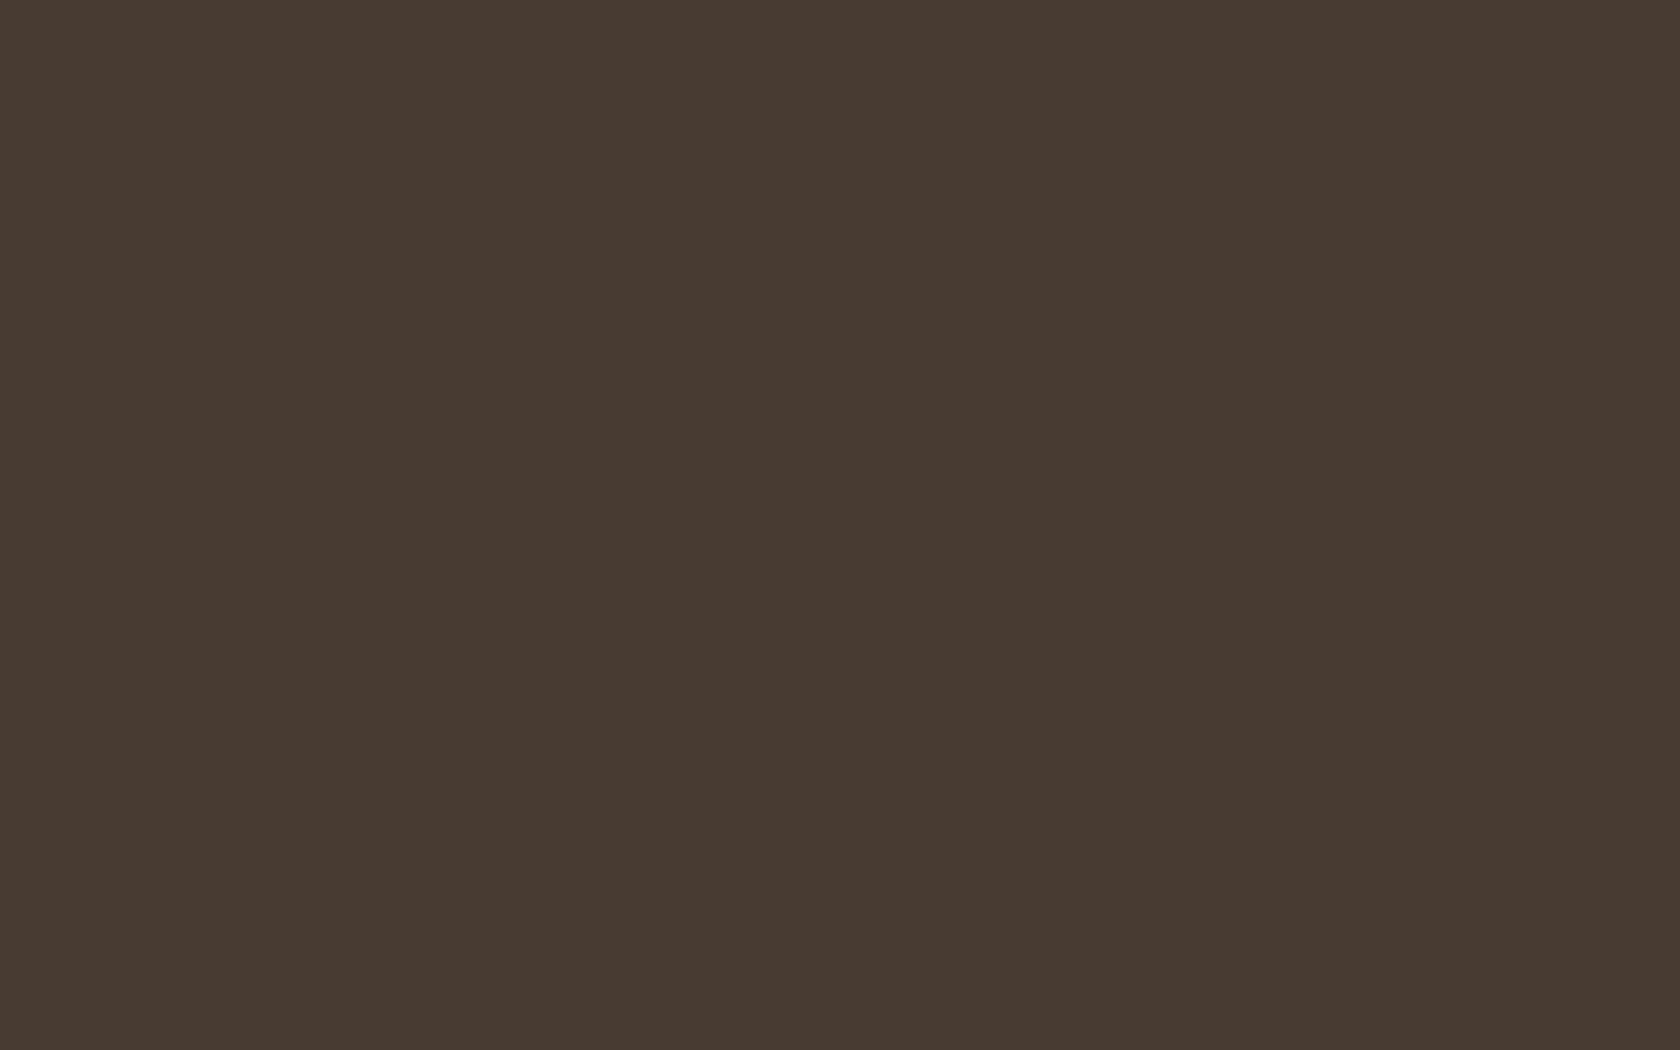 1680x1050 Dark Taupe Solid Color Background